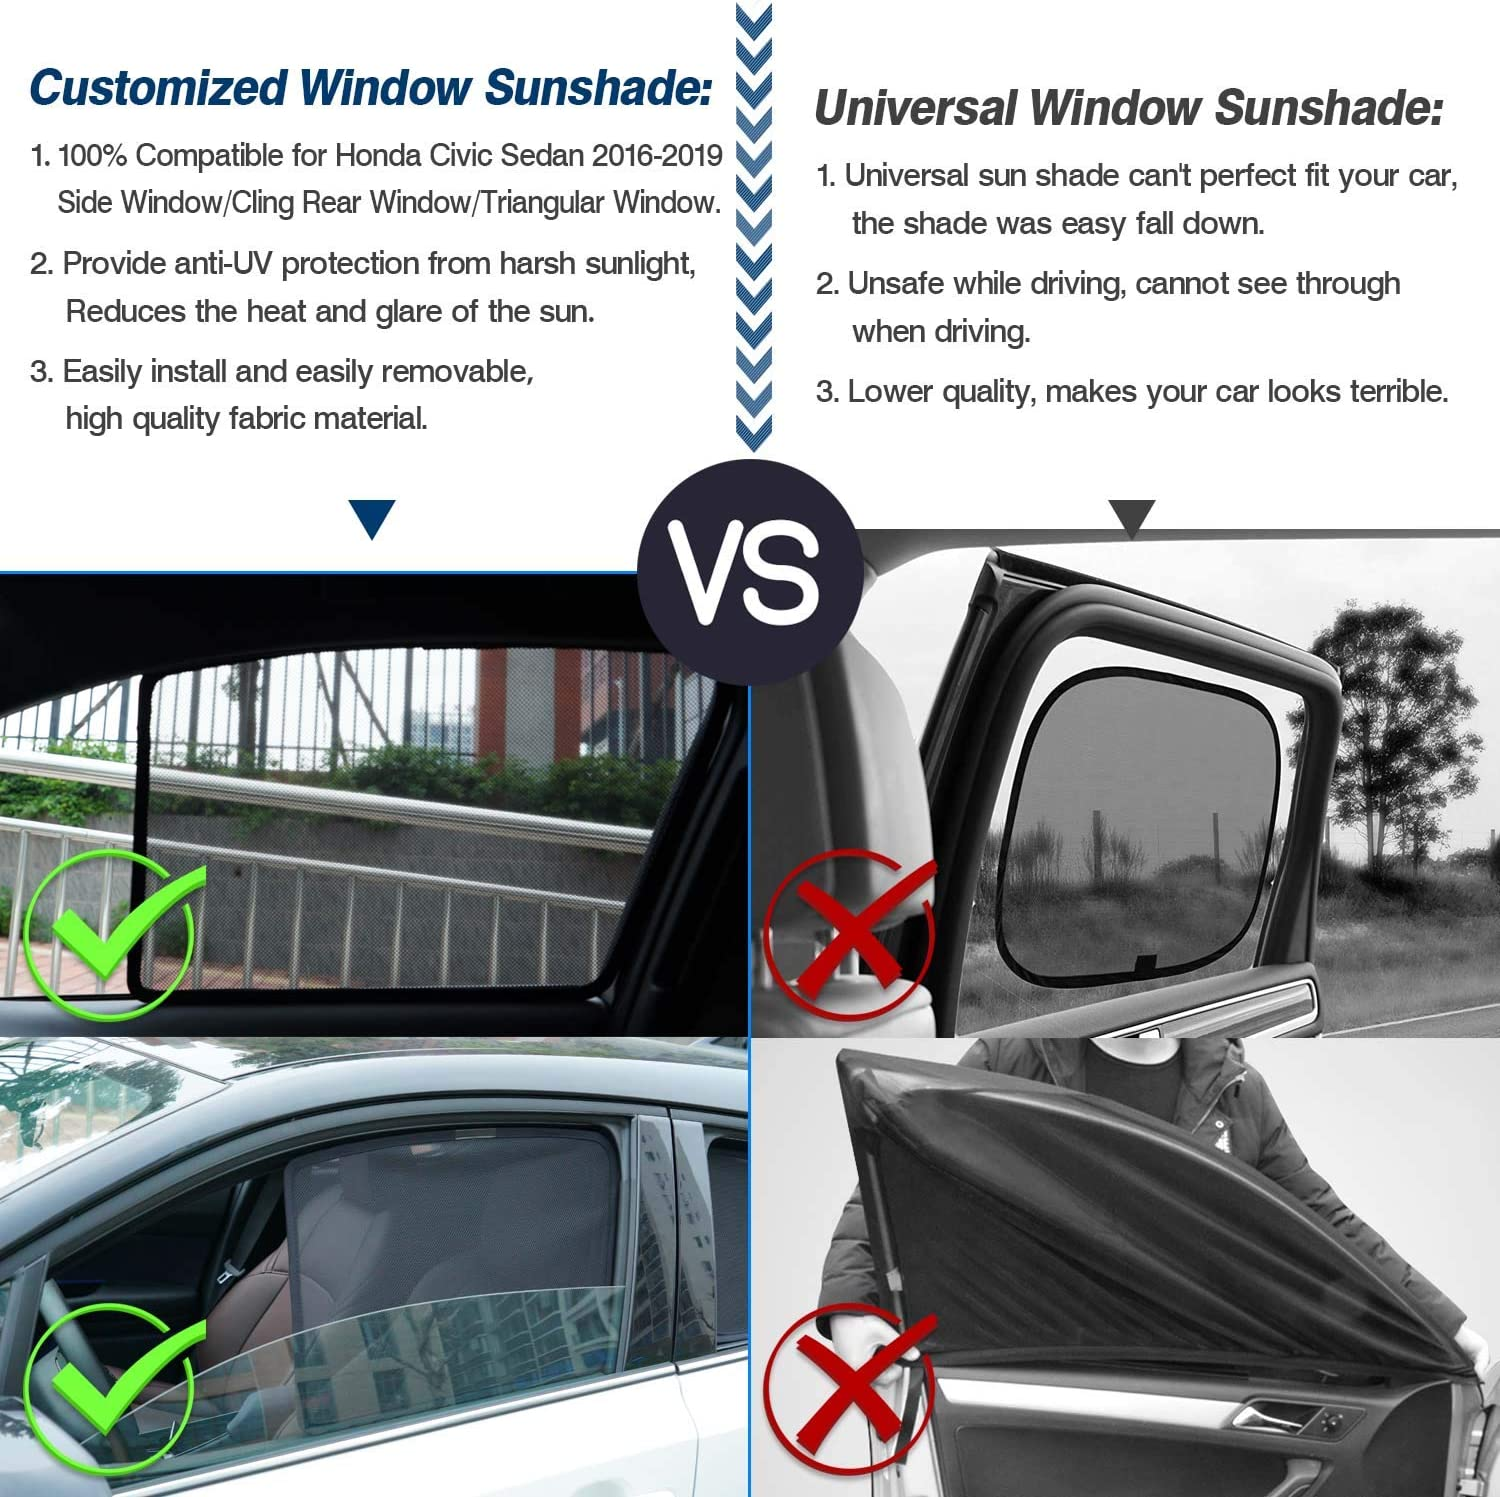 Mix Super Model 3 Front Glass Roof Sunshade UV Block Shade Window Shade with Small Rear Side Window Sunshade for Tesla Model 3